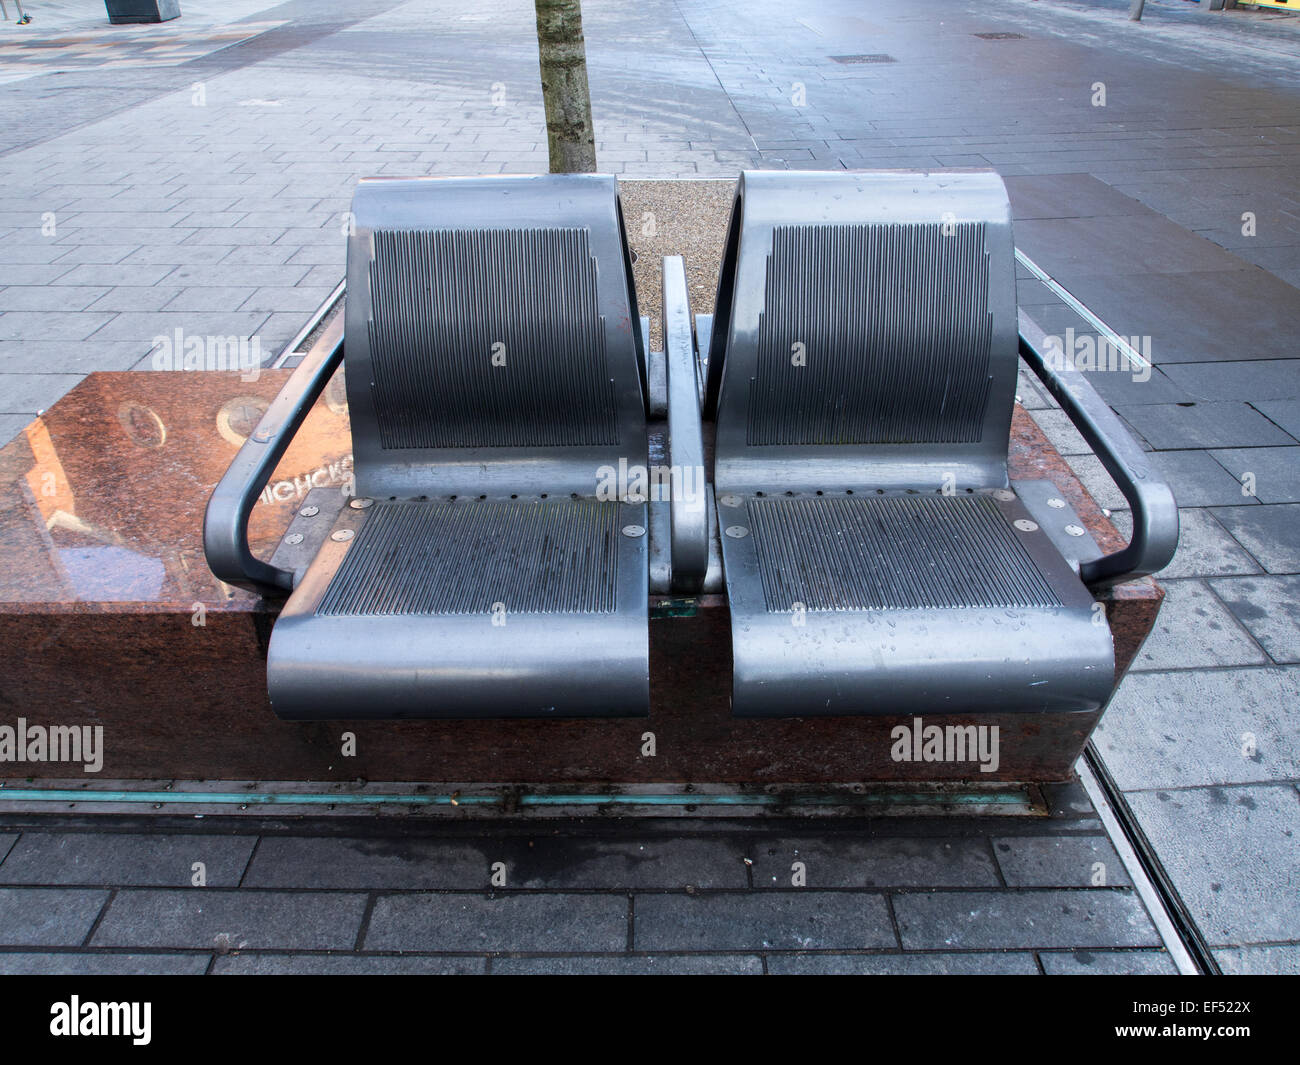 Street Furniture; Metal seats set on marble plinths in the High Street, Leicester on 22nd January 2015 - Stock Image